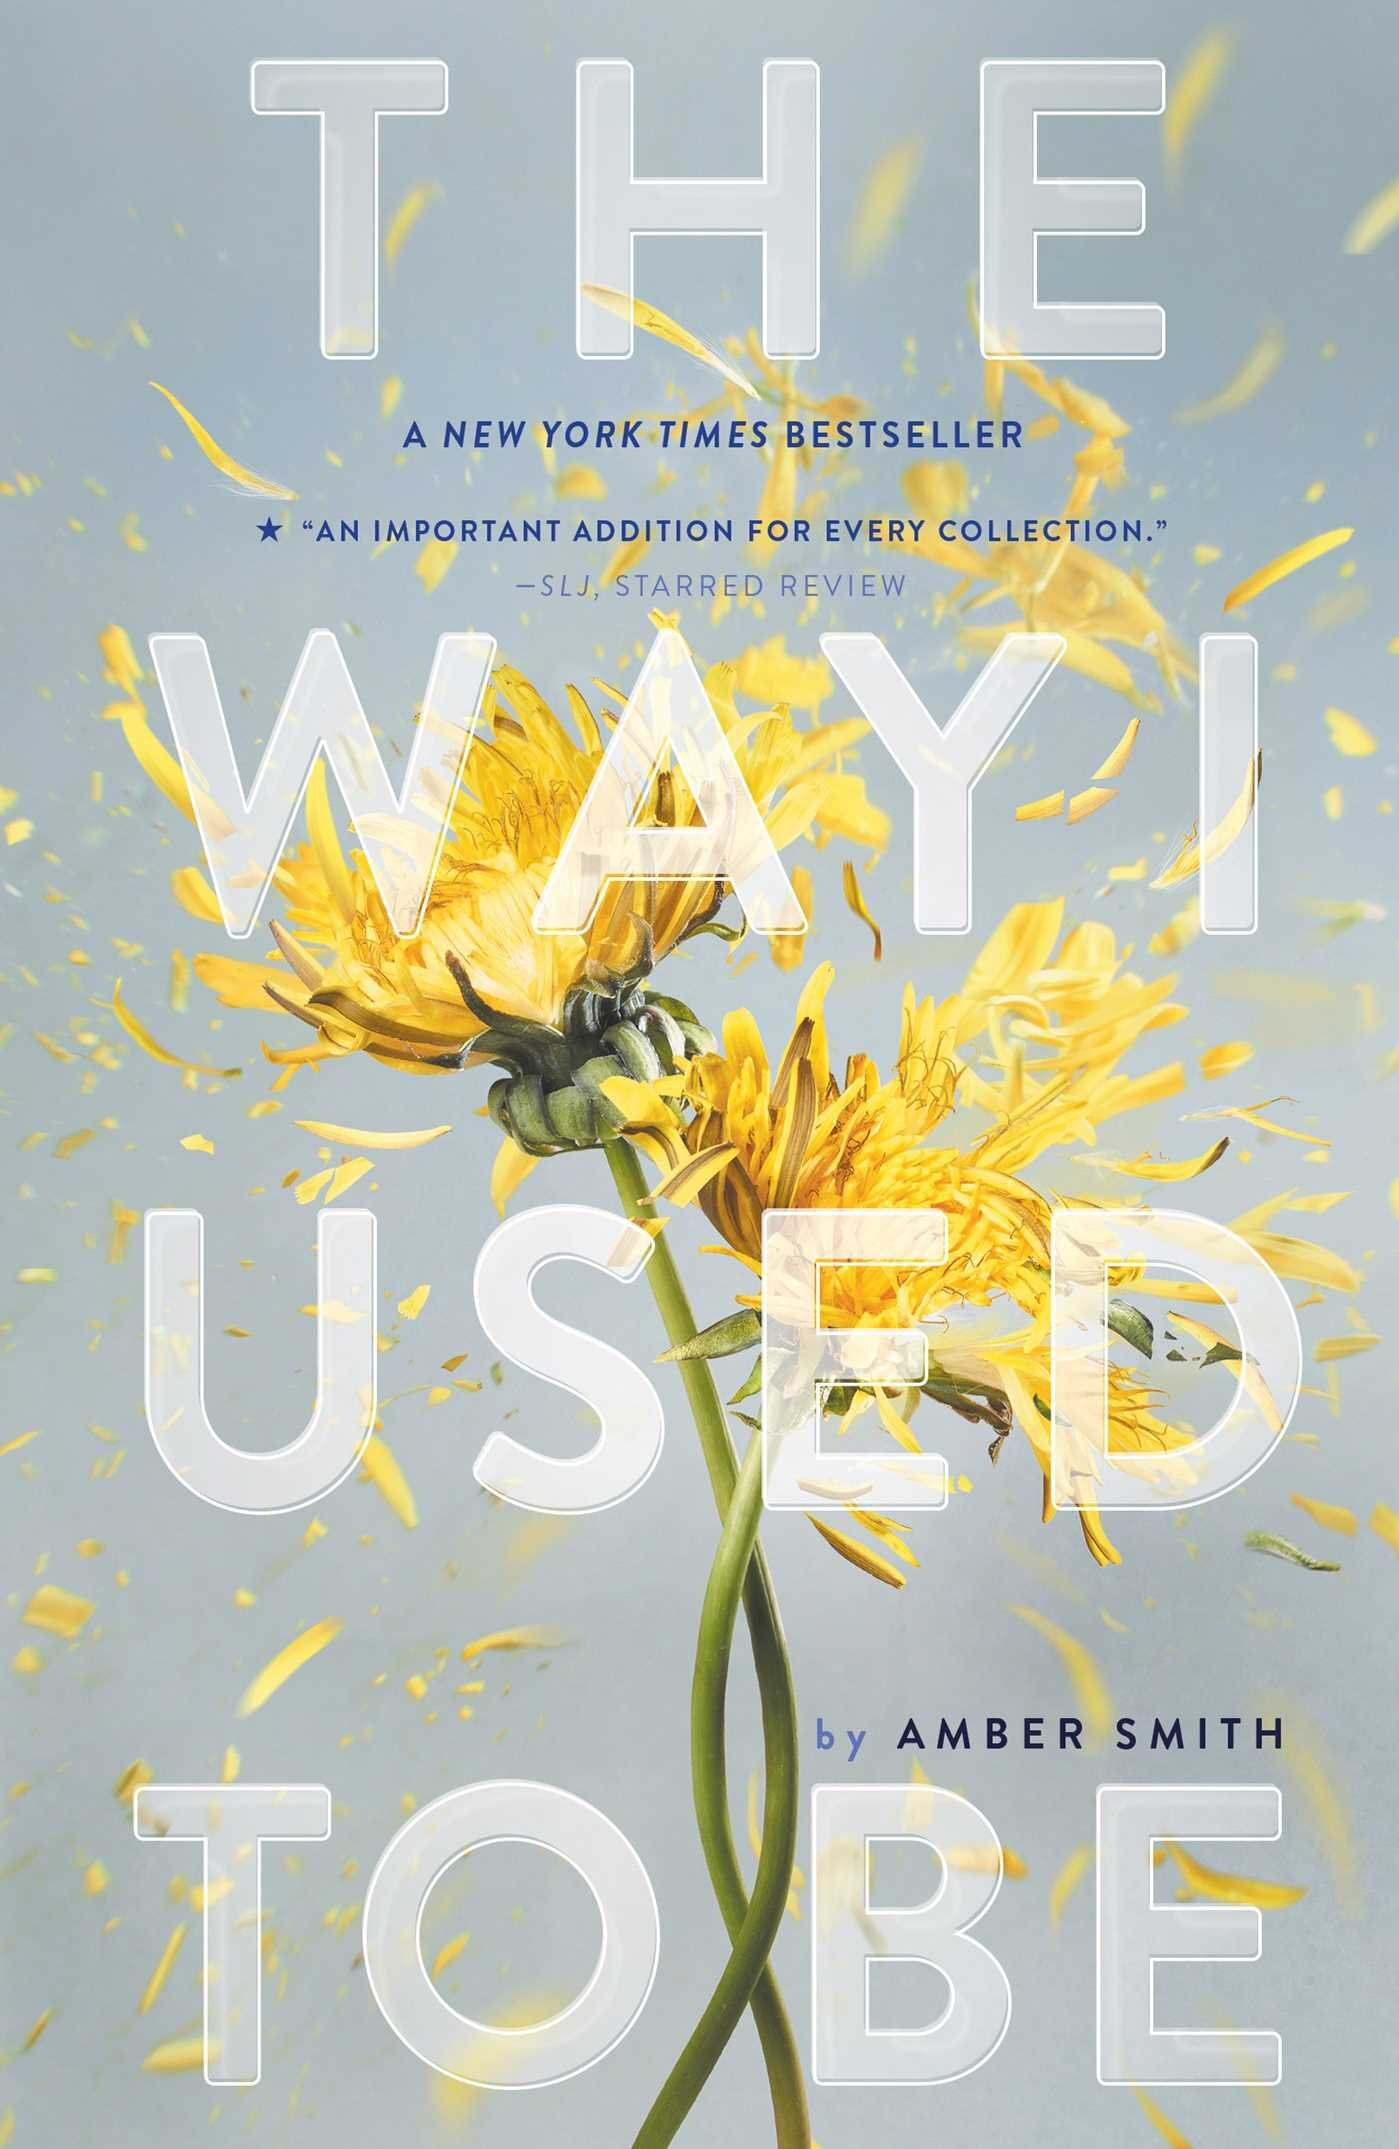 The Way I Used to Be By Amber Smith follows the story of a young woman as she struggles to find strength in the aftermath of an assault.  This book is an  OYT book club  read for the month of October.